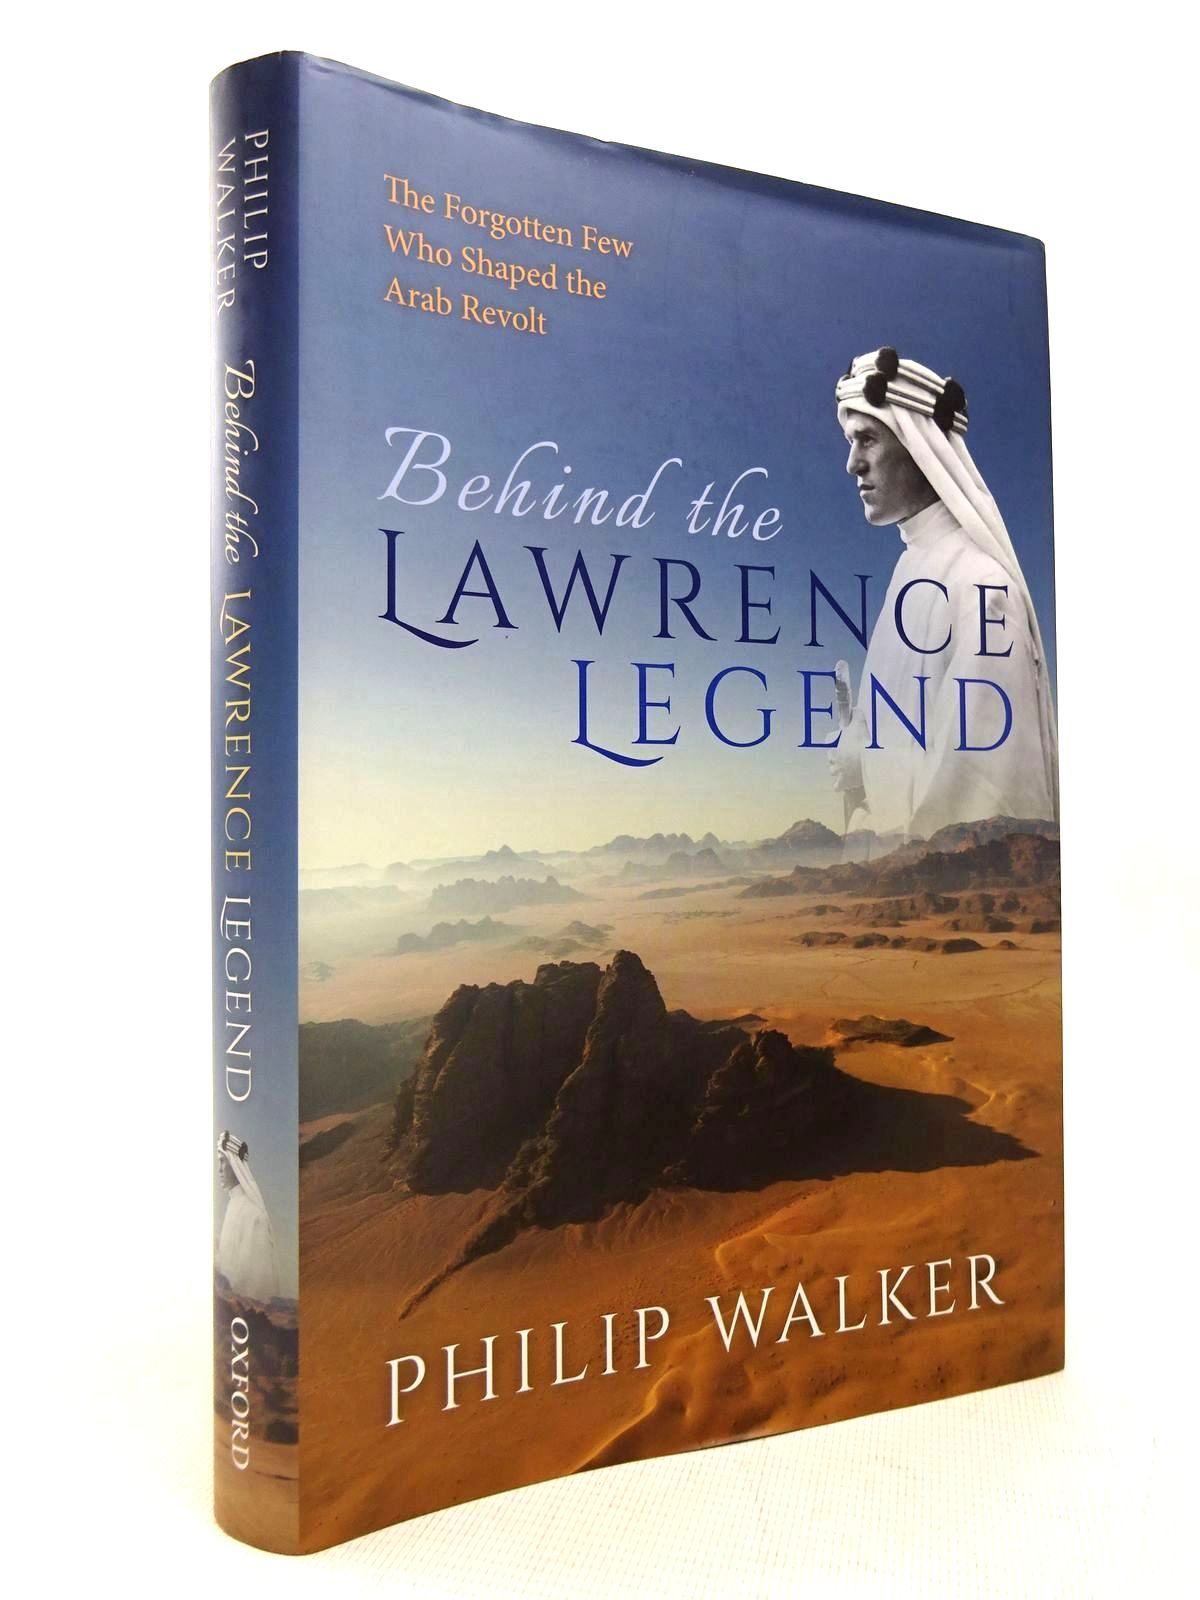 Photo of BEHIND THE LAWRENCE LEGEND: THE FORGOTTEN FEW WHO SHAPED THE ARAB REVOLT written by Walker, Philip published by Oxford University Press (STOCK CODE: 1816390)  for sale by Stella & Rose's Books